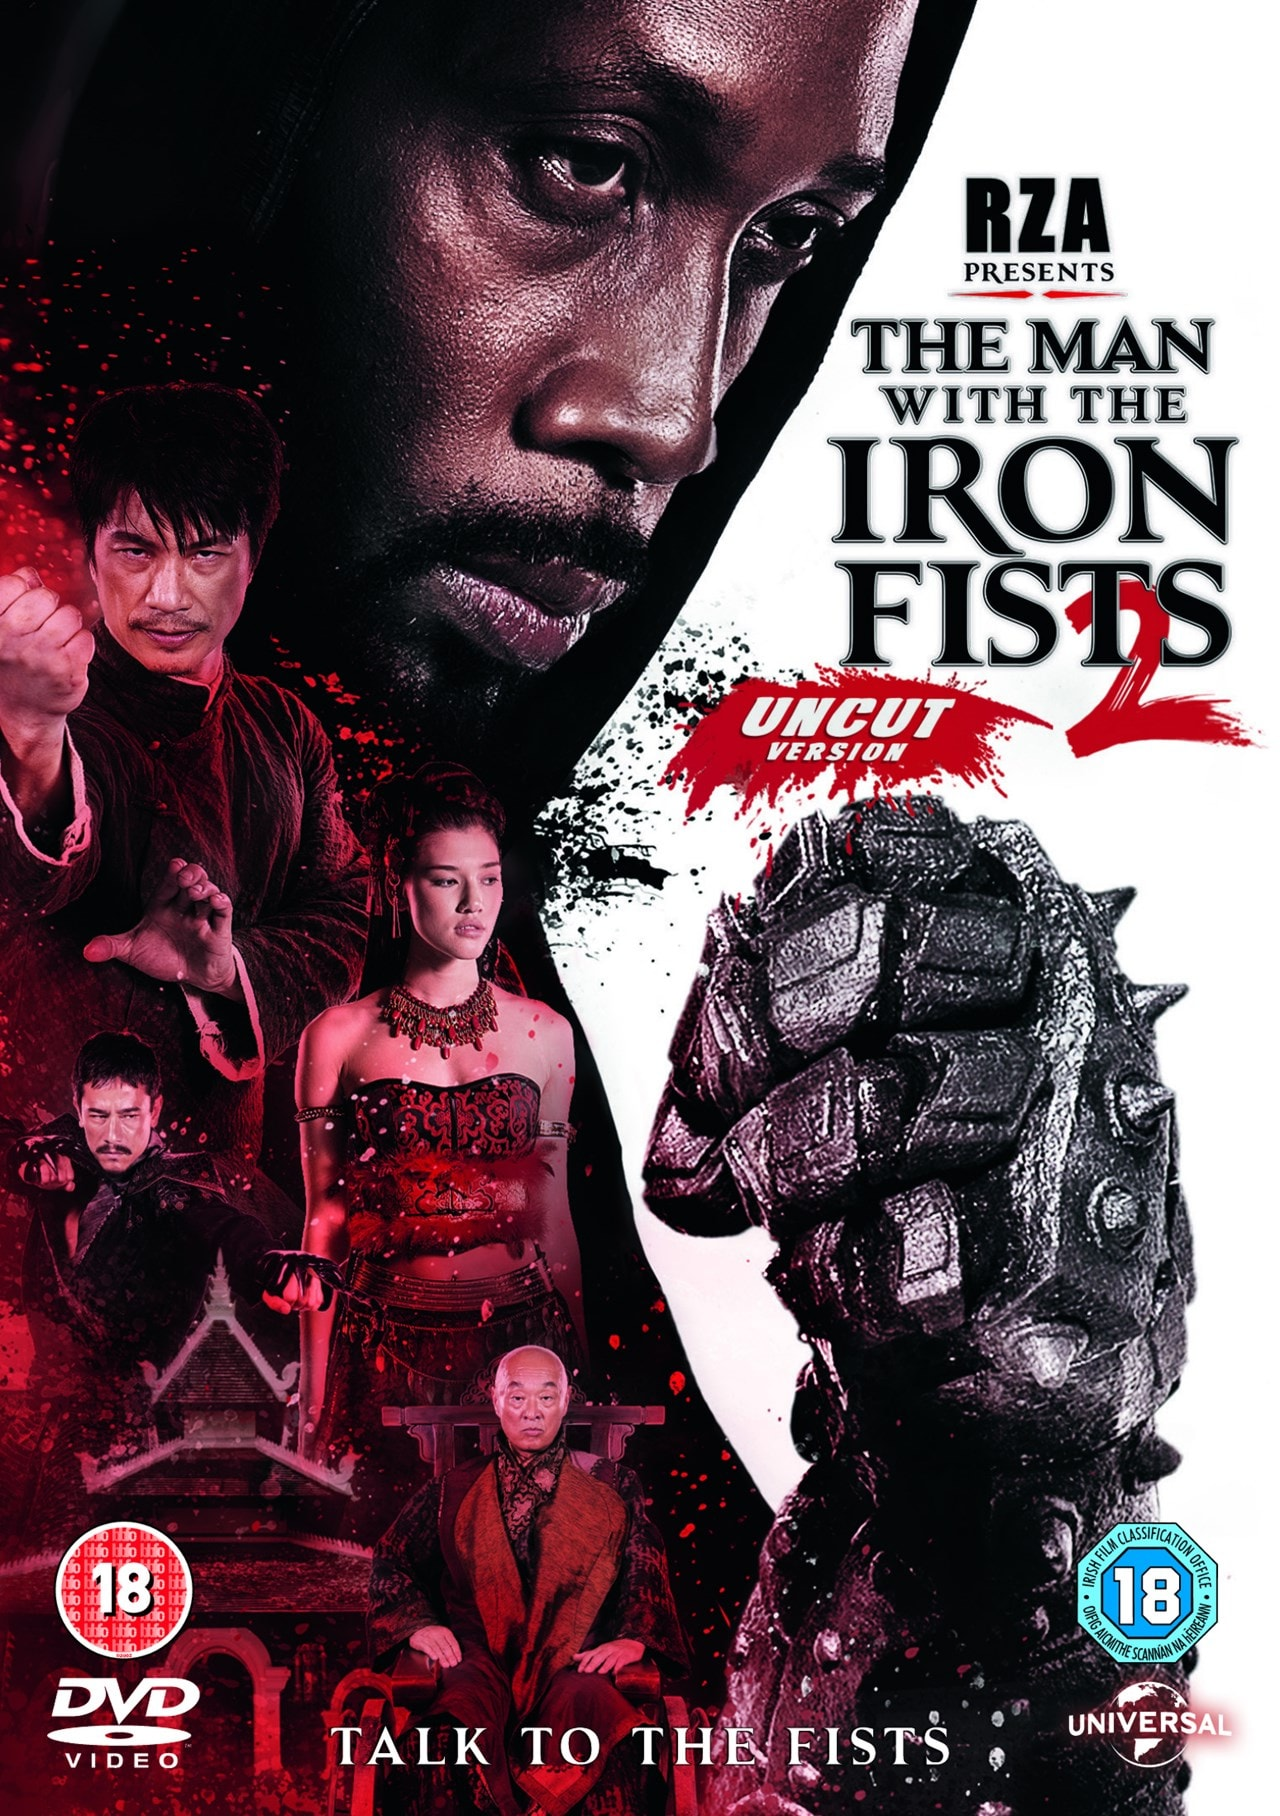 The Man With the Iron Fists 2 - Uncut - 1